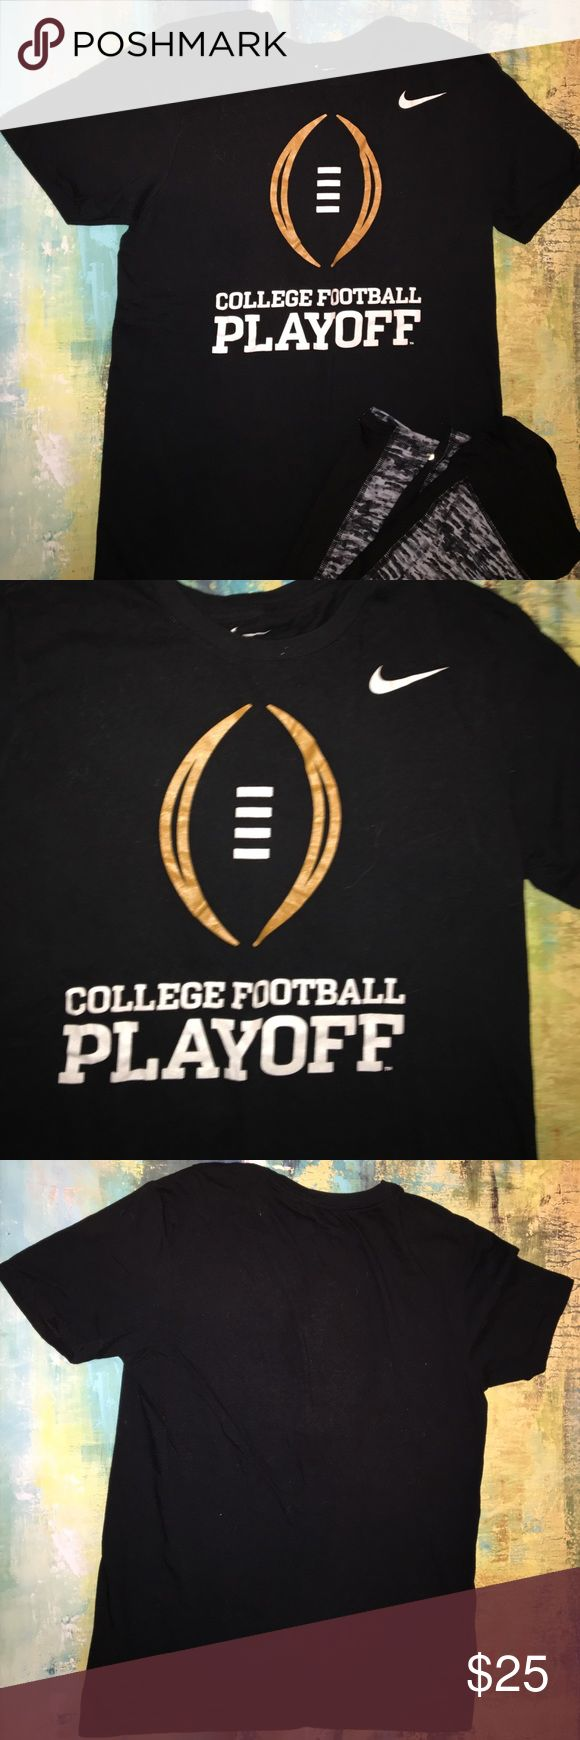 Nike College Football Playoff T-shirt Everyone who is a college football fan needs this tee on their closet. Originally purchase at the Alabama vs Clemson championship game in Arizona. Tops Tees - Short Sleeve